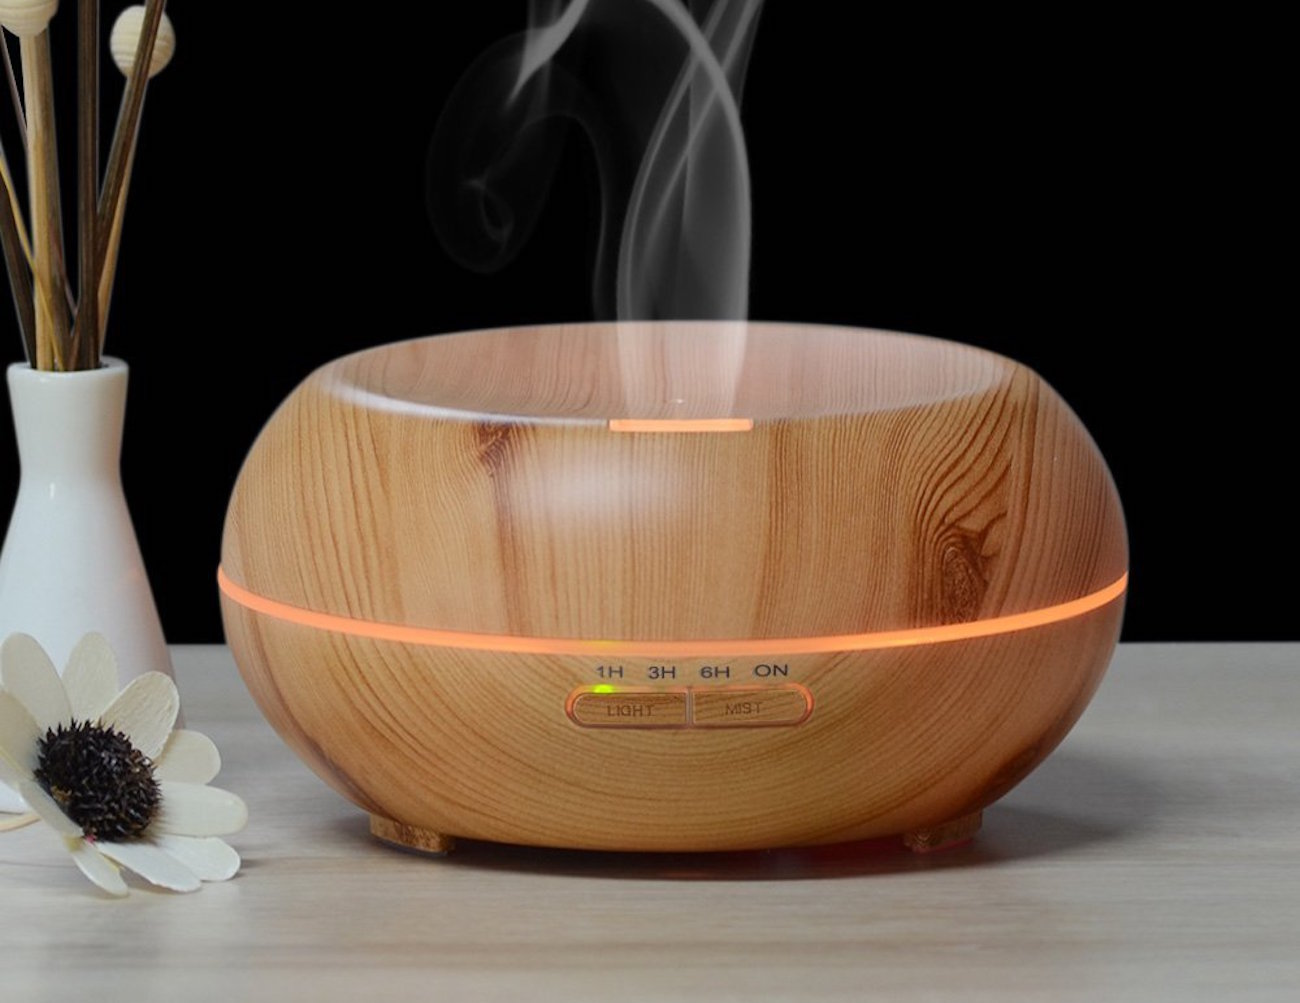 InnoGear Wood Grain Ultrasonic Oil Diffuser Review » The Gadget Flow #A6A325